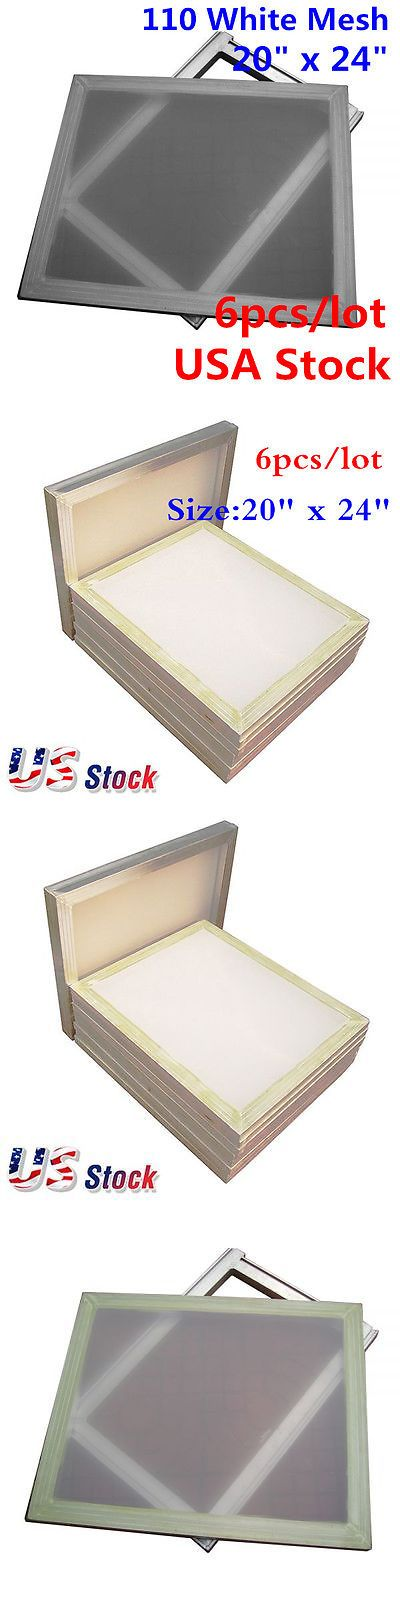 Screen Printing Frames 183114: Us Stock! 6 Pcs Lot- 20 X 24 Aluminum Screen With 110 White Mesh -> BUY IT NOW ONLY: $81.77 on eBay!